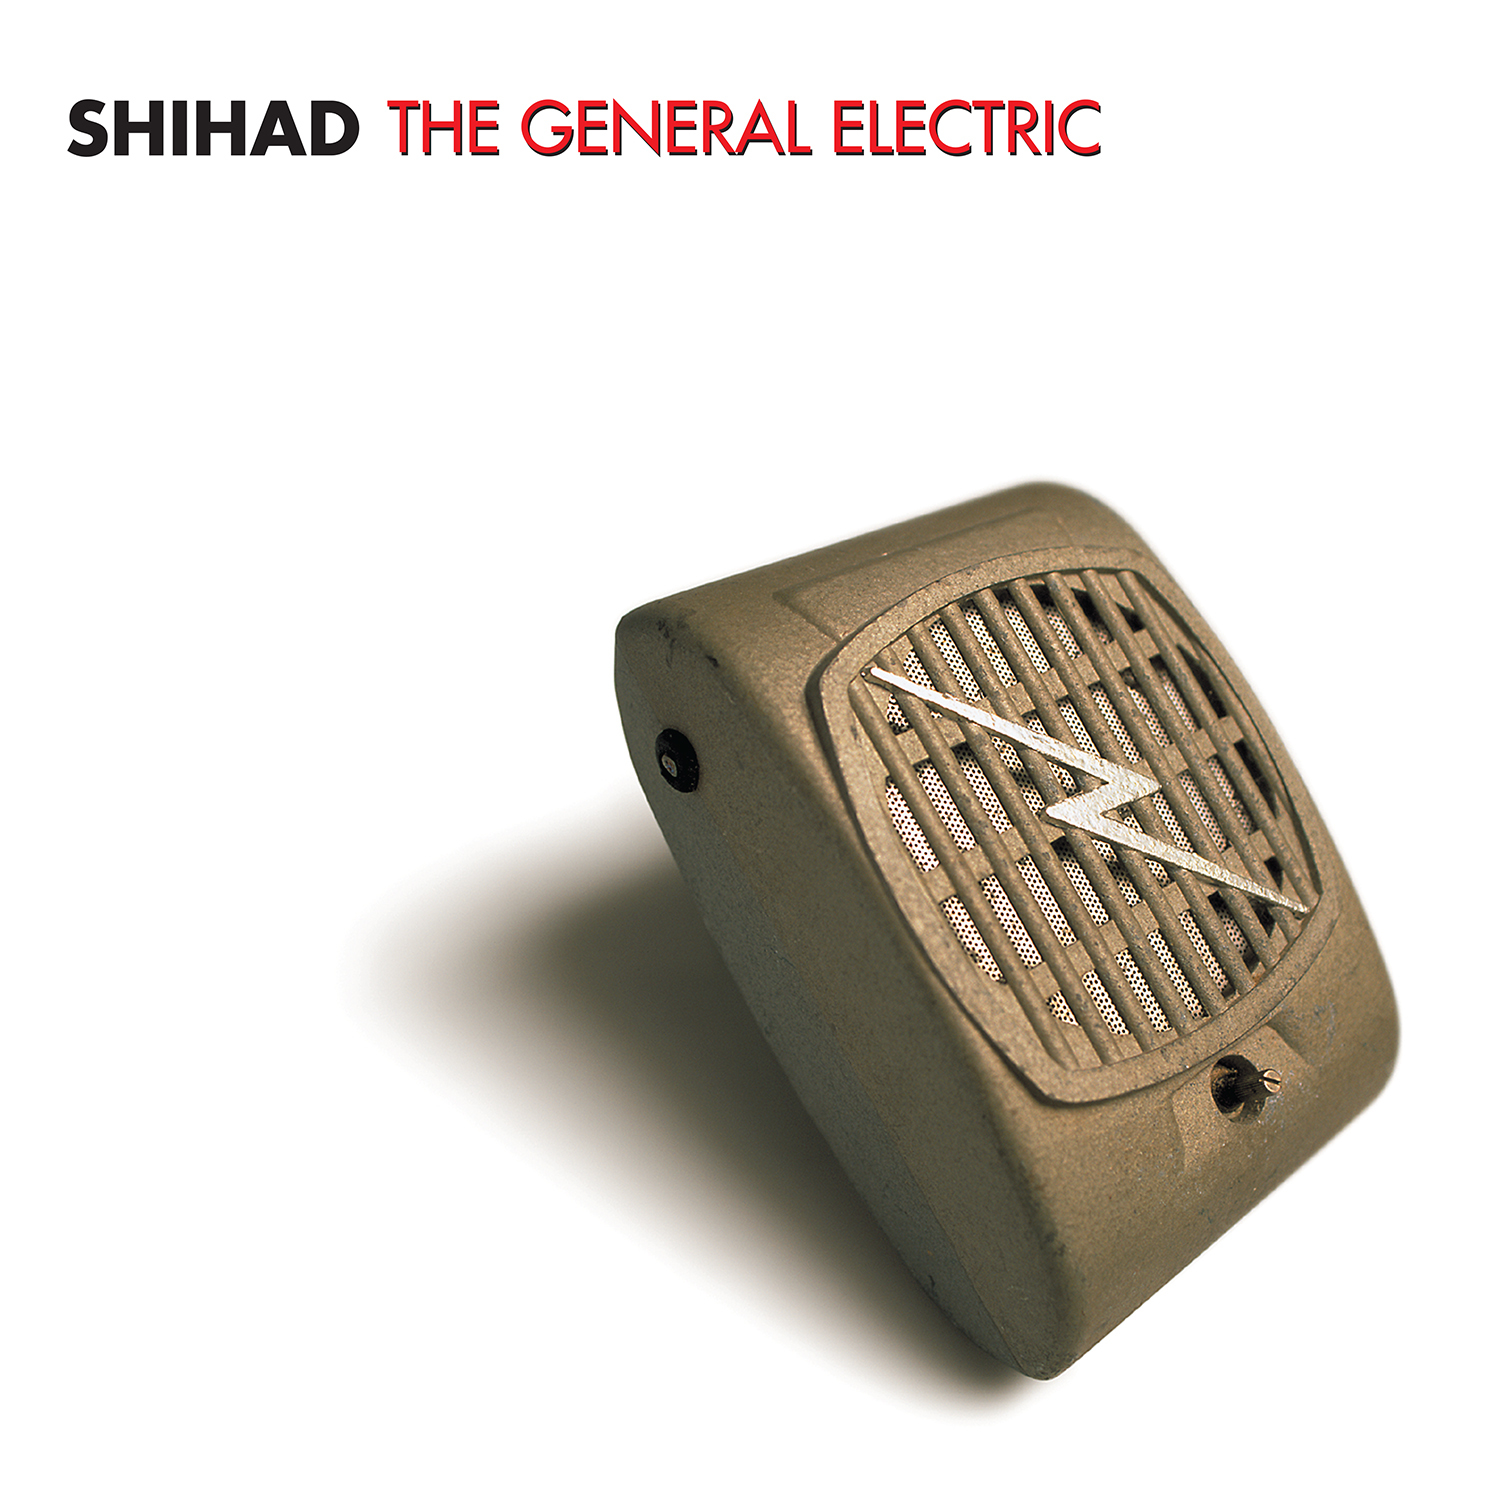 Shihad - The General Electric (Remastered) by Shihad image